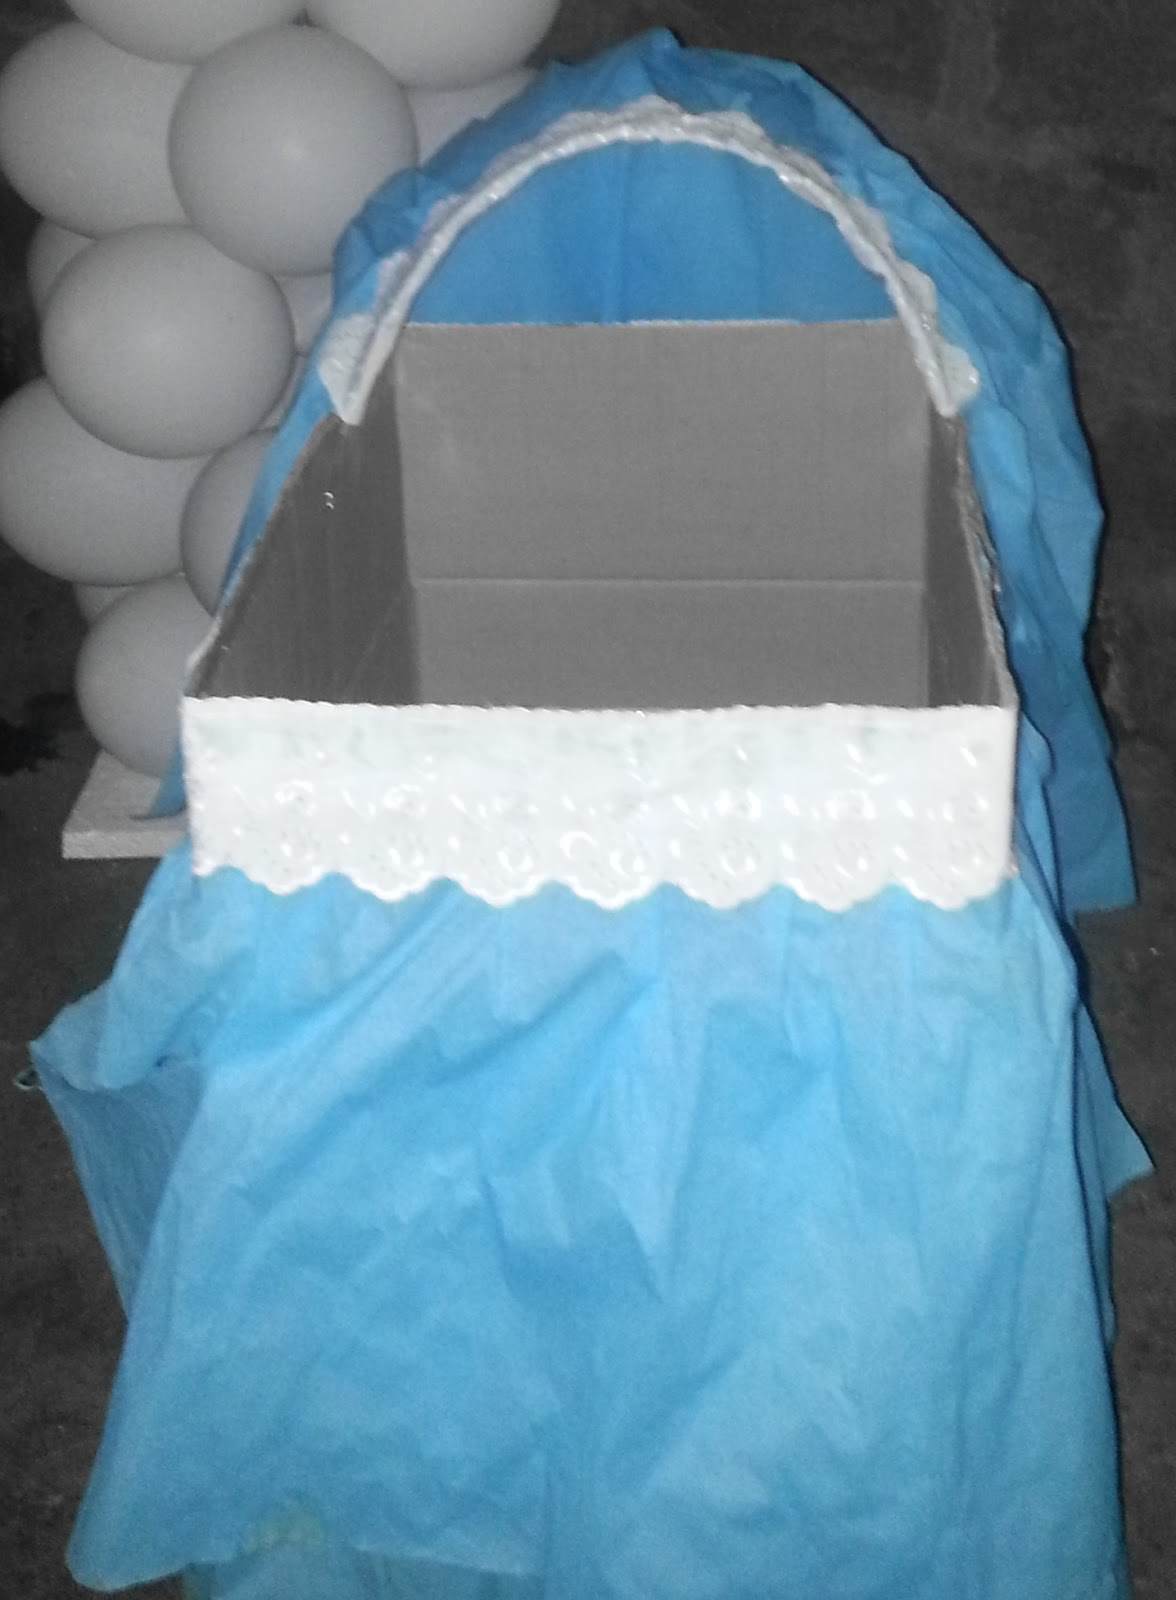 Cuna Para Regalos De Baby Shower Nino.Como Decorar Cuna Para Regalos De Baby Shower Imagui